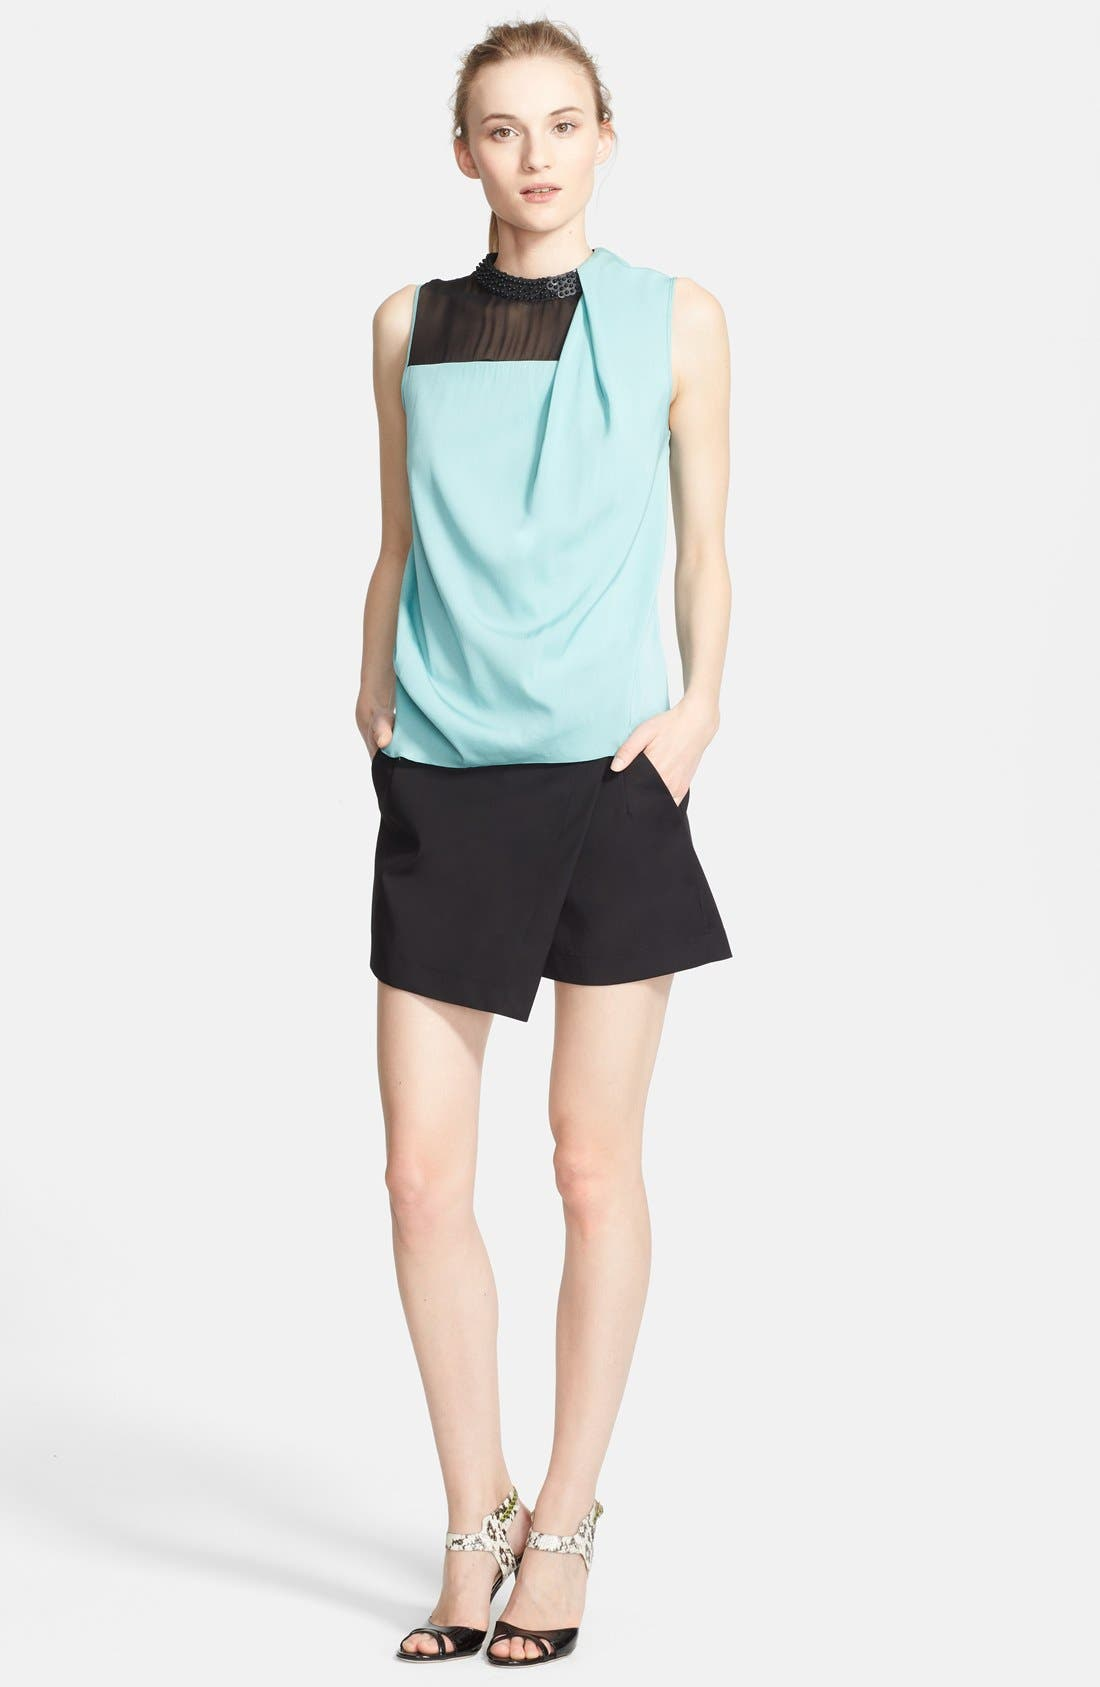 Alternate Image 1 Selected - Robert Rodriguez Silk Top & Techno Skort